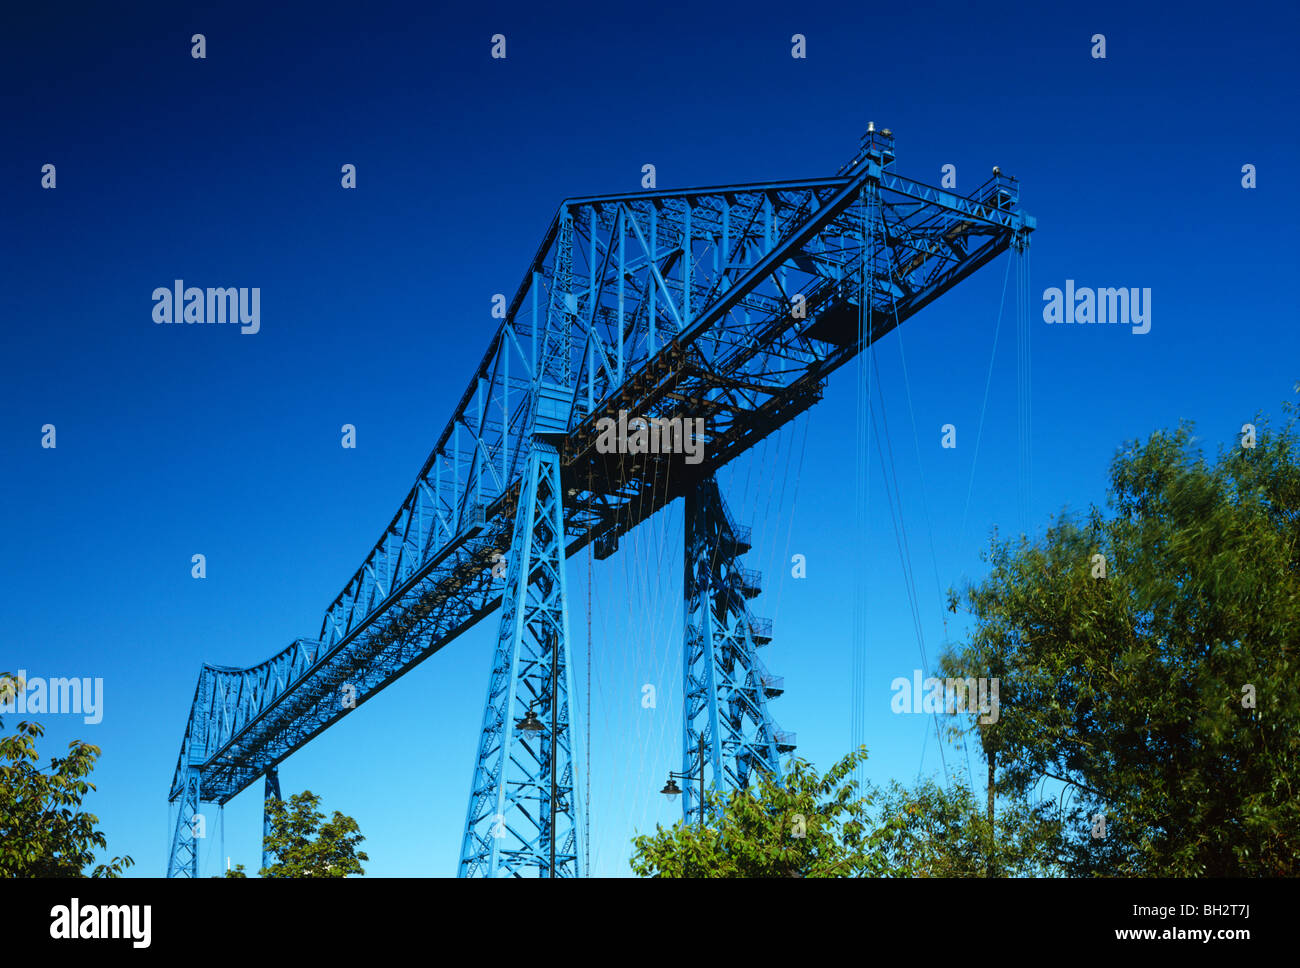 A daytime view of the Transporter Bridge over the River Wear in Middlesbrough, Tees Valley - Stock Image